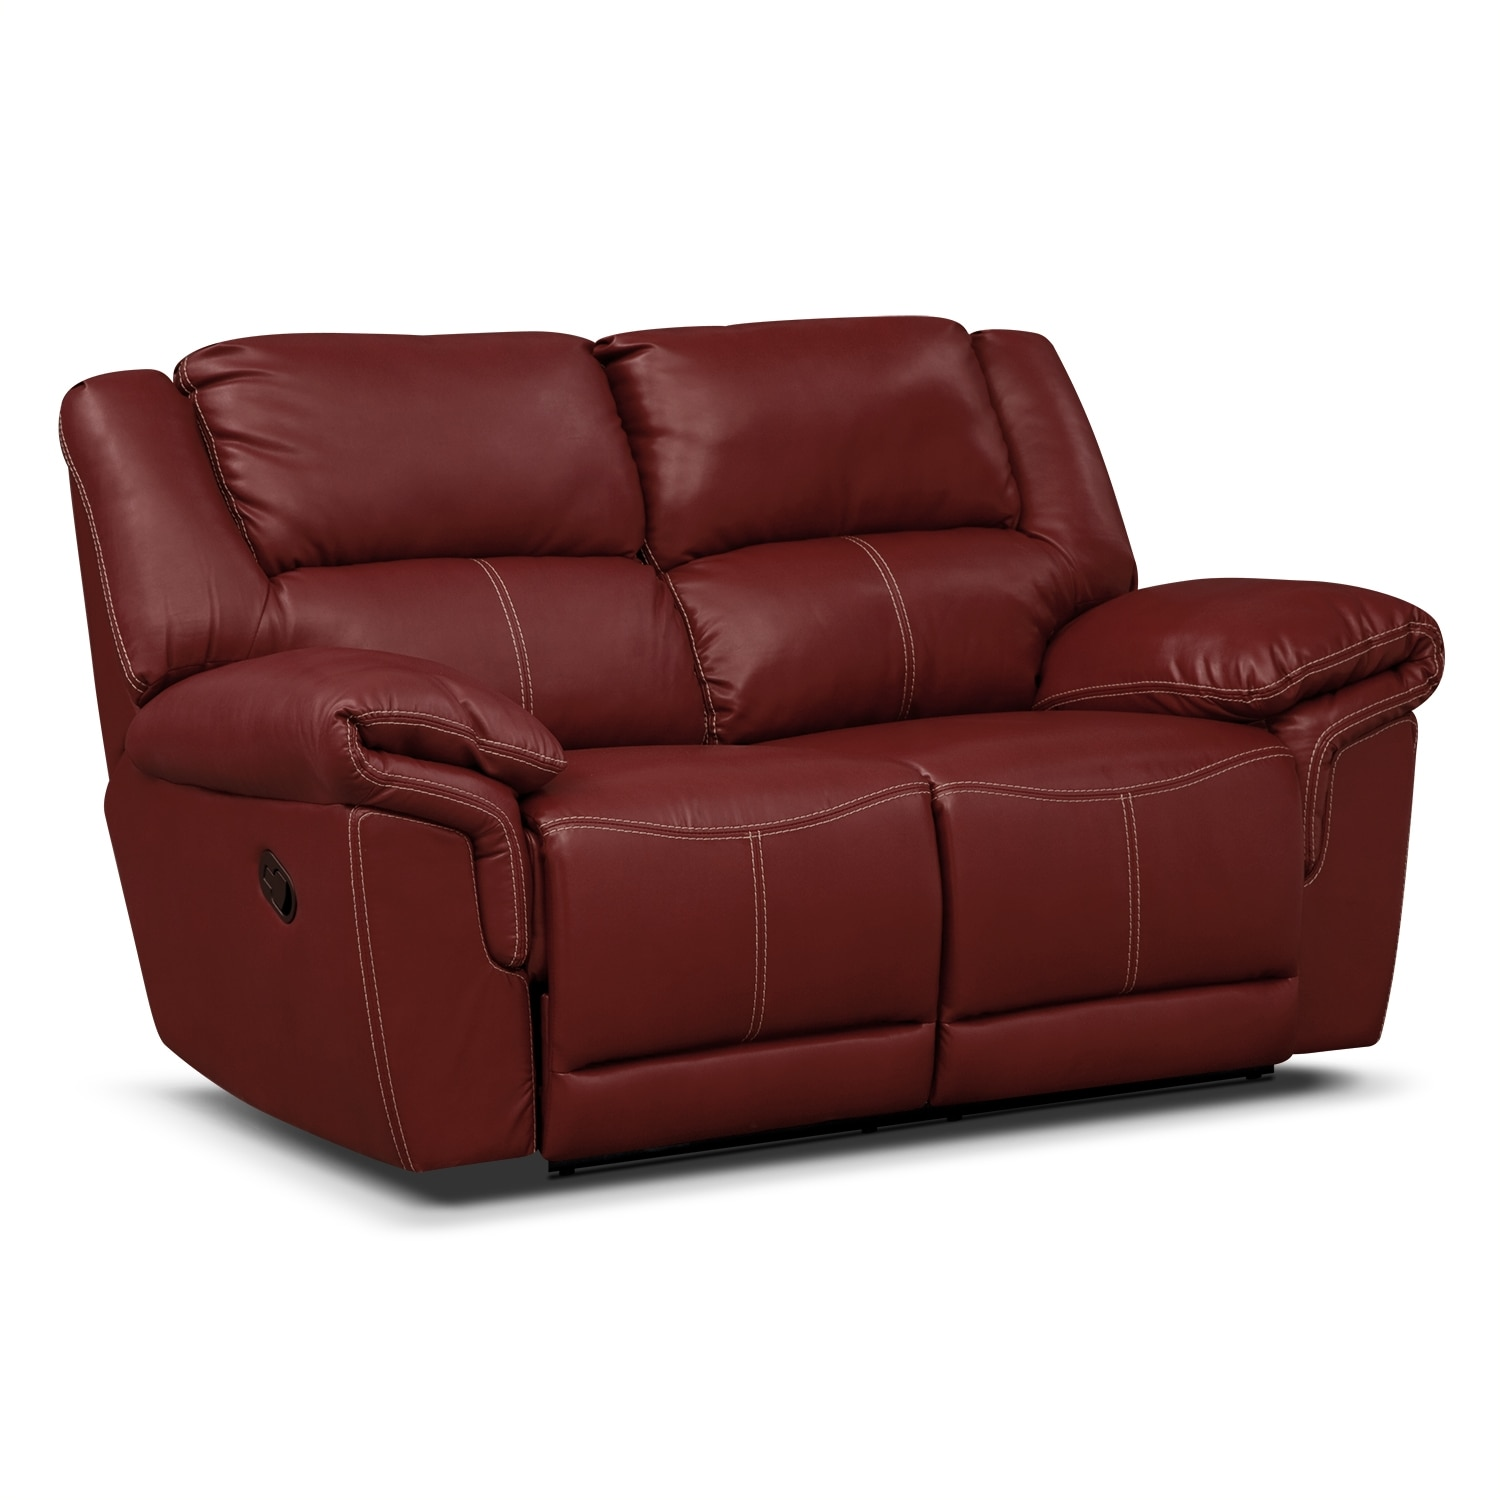 Reclining Loveseat Sale 28 Images Cheap Reclining Sofas Sale Fabric Recliner Sofas Sale